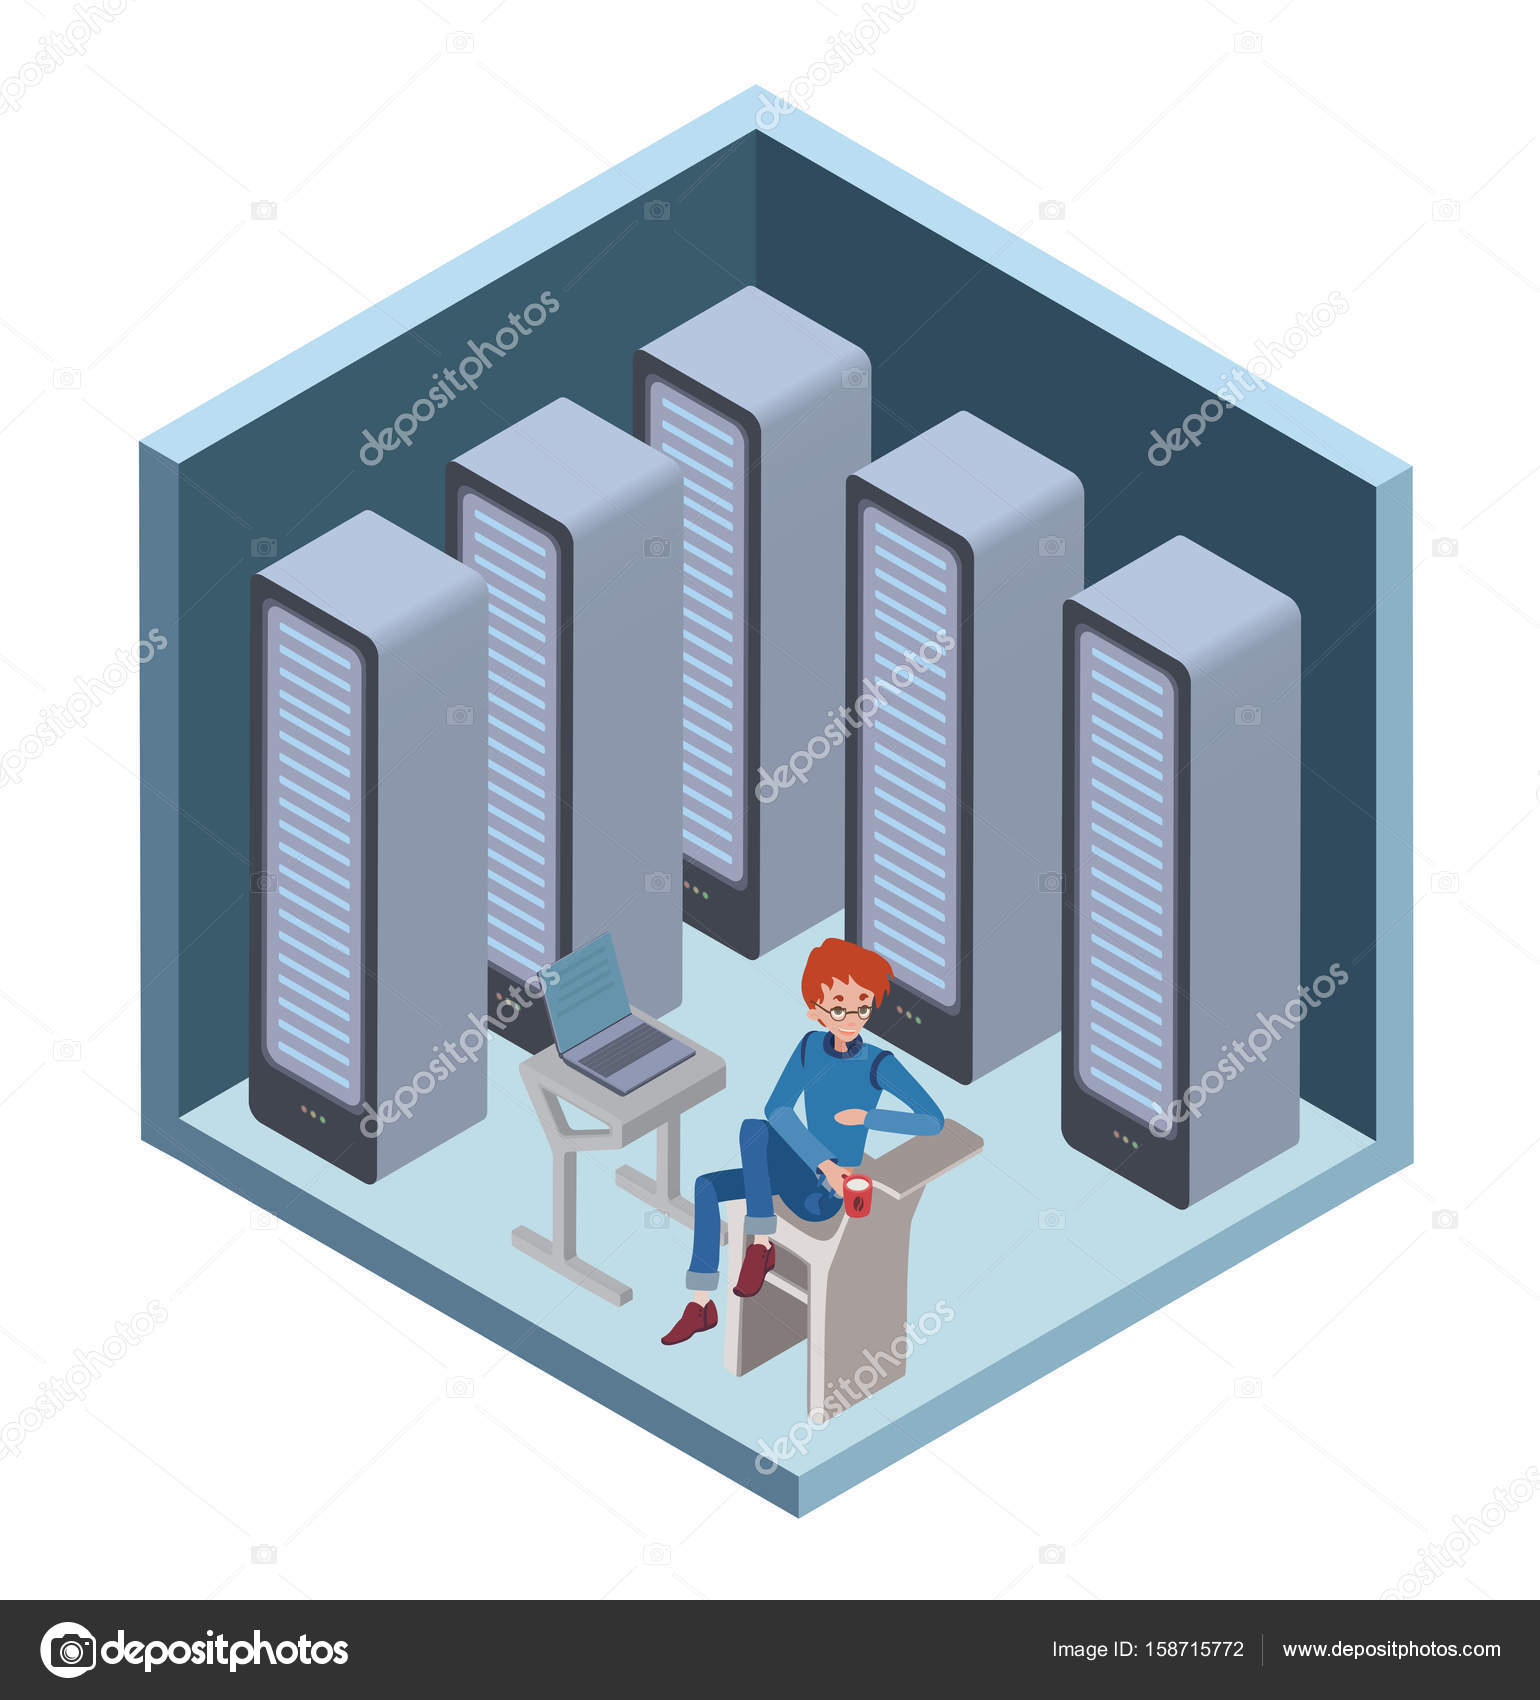 Data Center Icon System Administrator Man Sitting At The Computer In Server Room Vector Illustration Isometric Projection Isolated On White